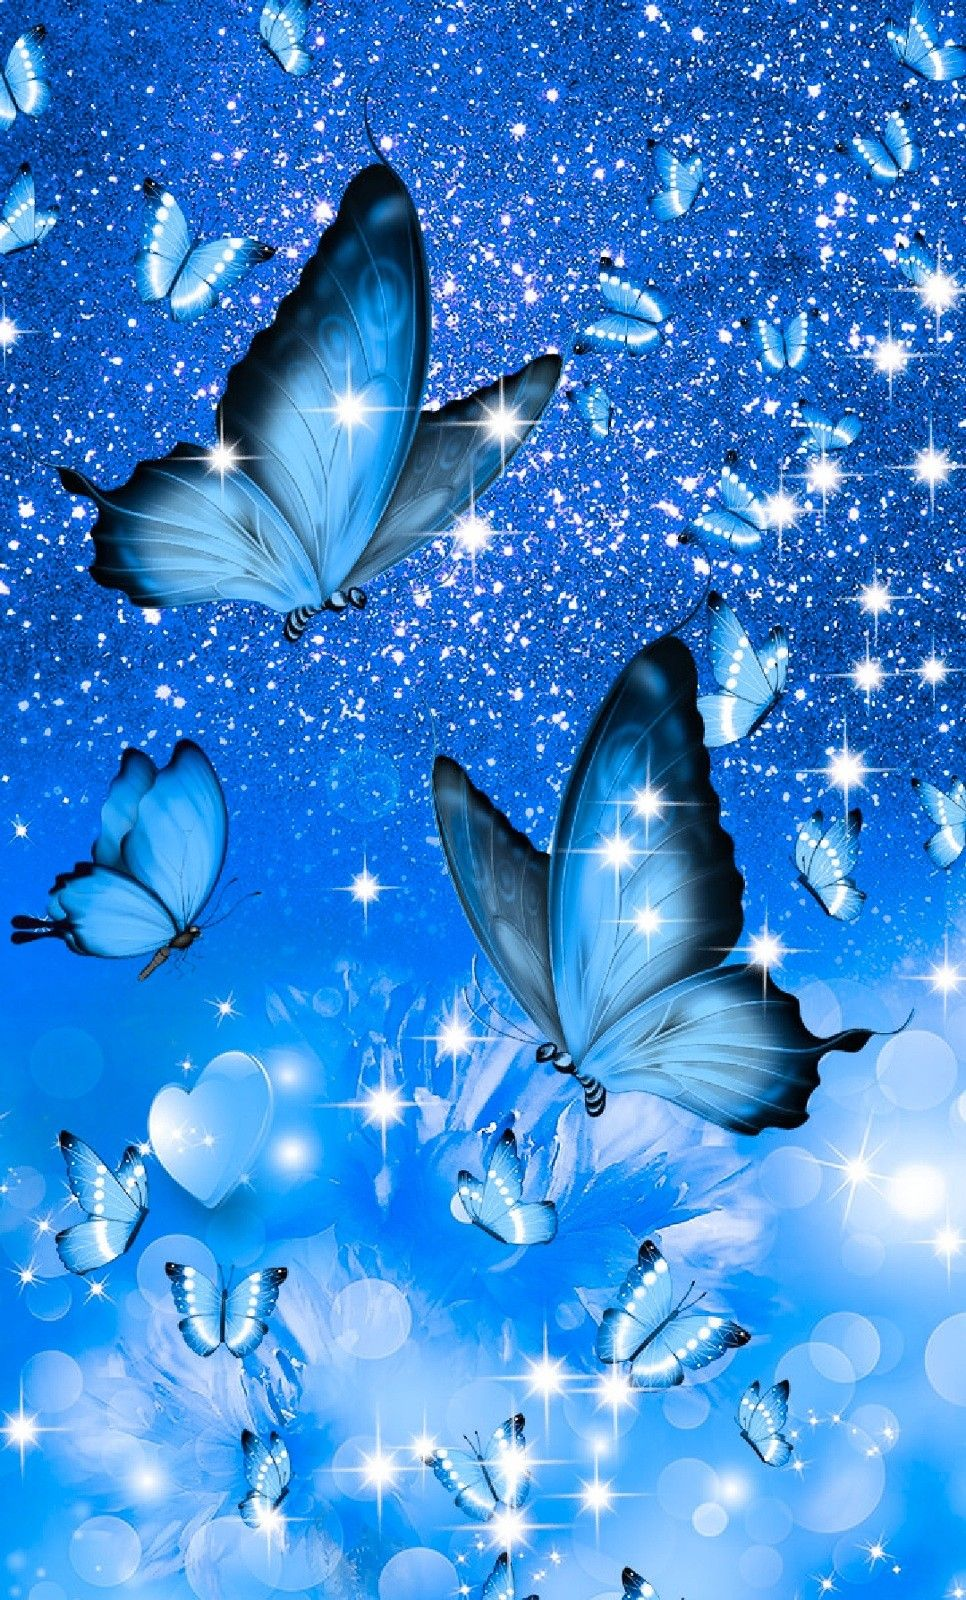 Pin By Songbird Sparkle April Barnha On Butterflay Wallpaper Blue Butterfly Wallpaper Butterfly Wallpaper Dream Catcher Wallpaper Iphone